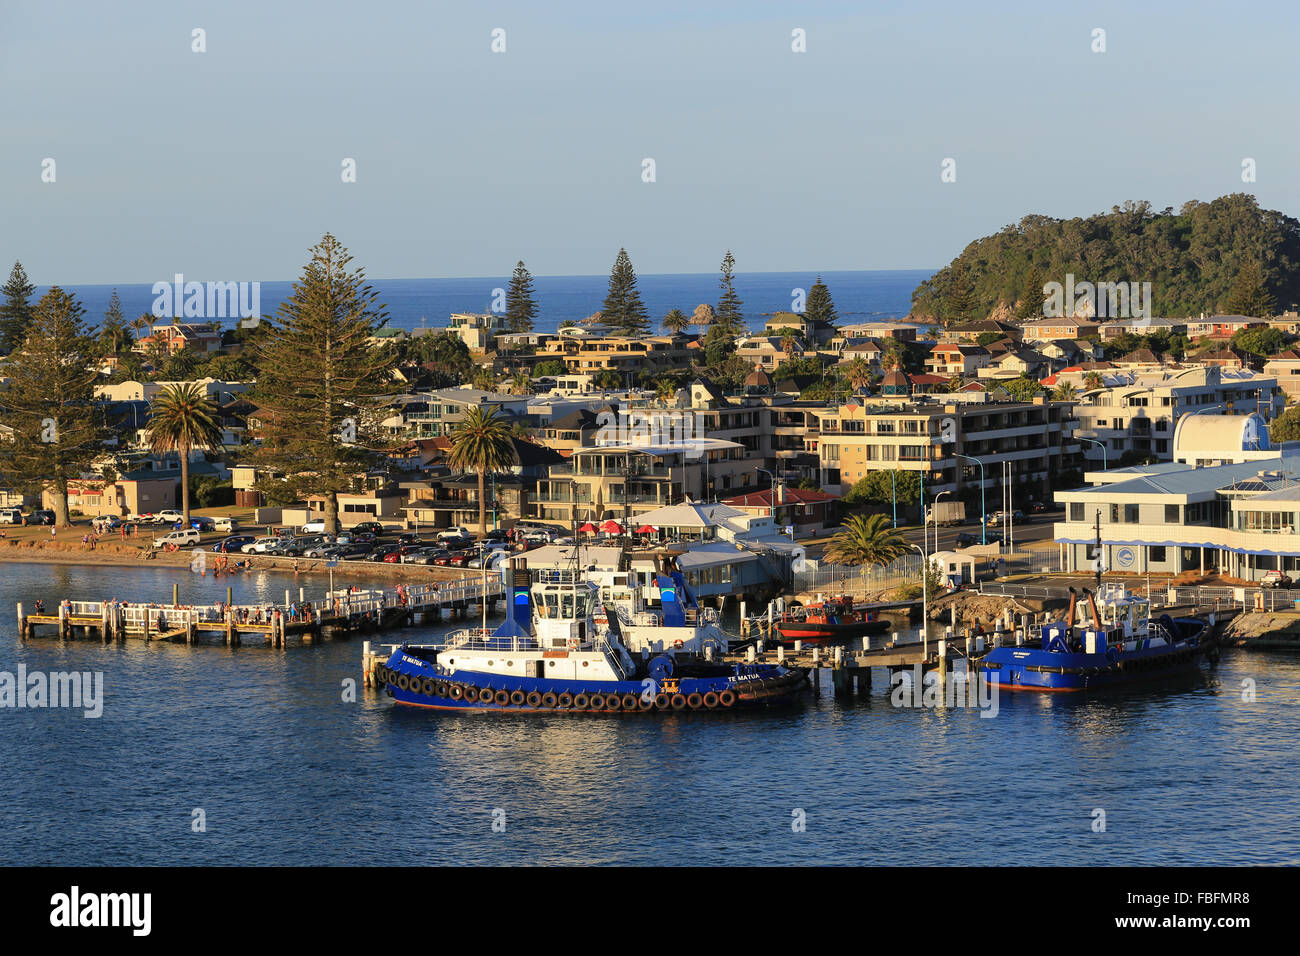 Tug boats and people along the waterfront at the Port of Tauranga in New Zealand. - Stock Image